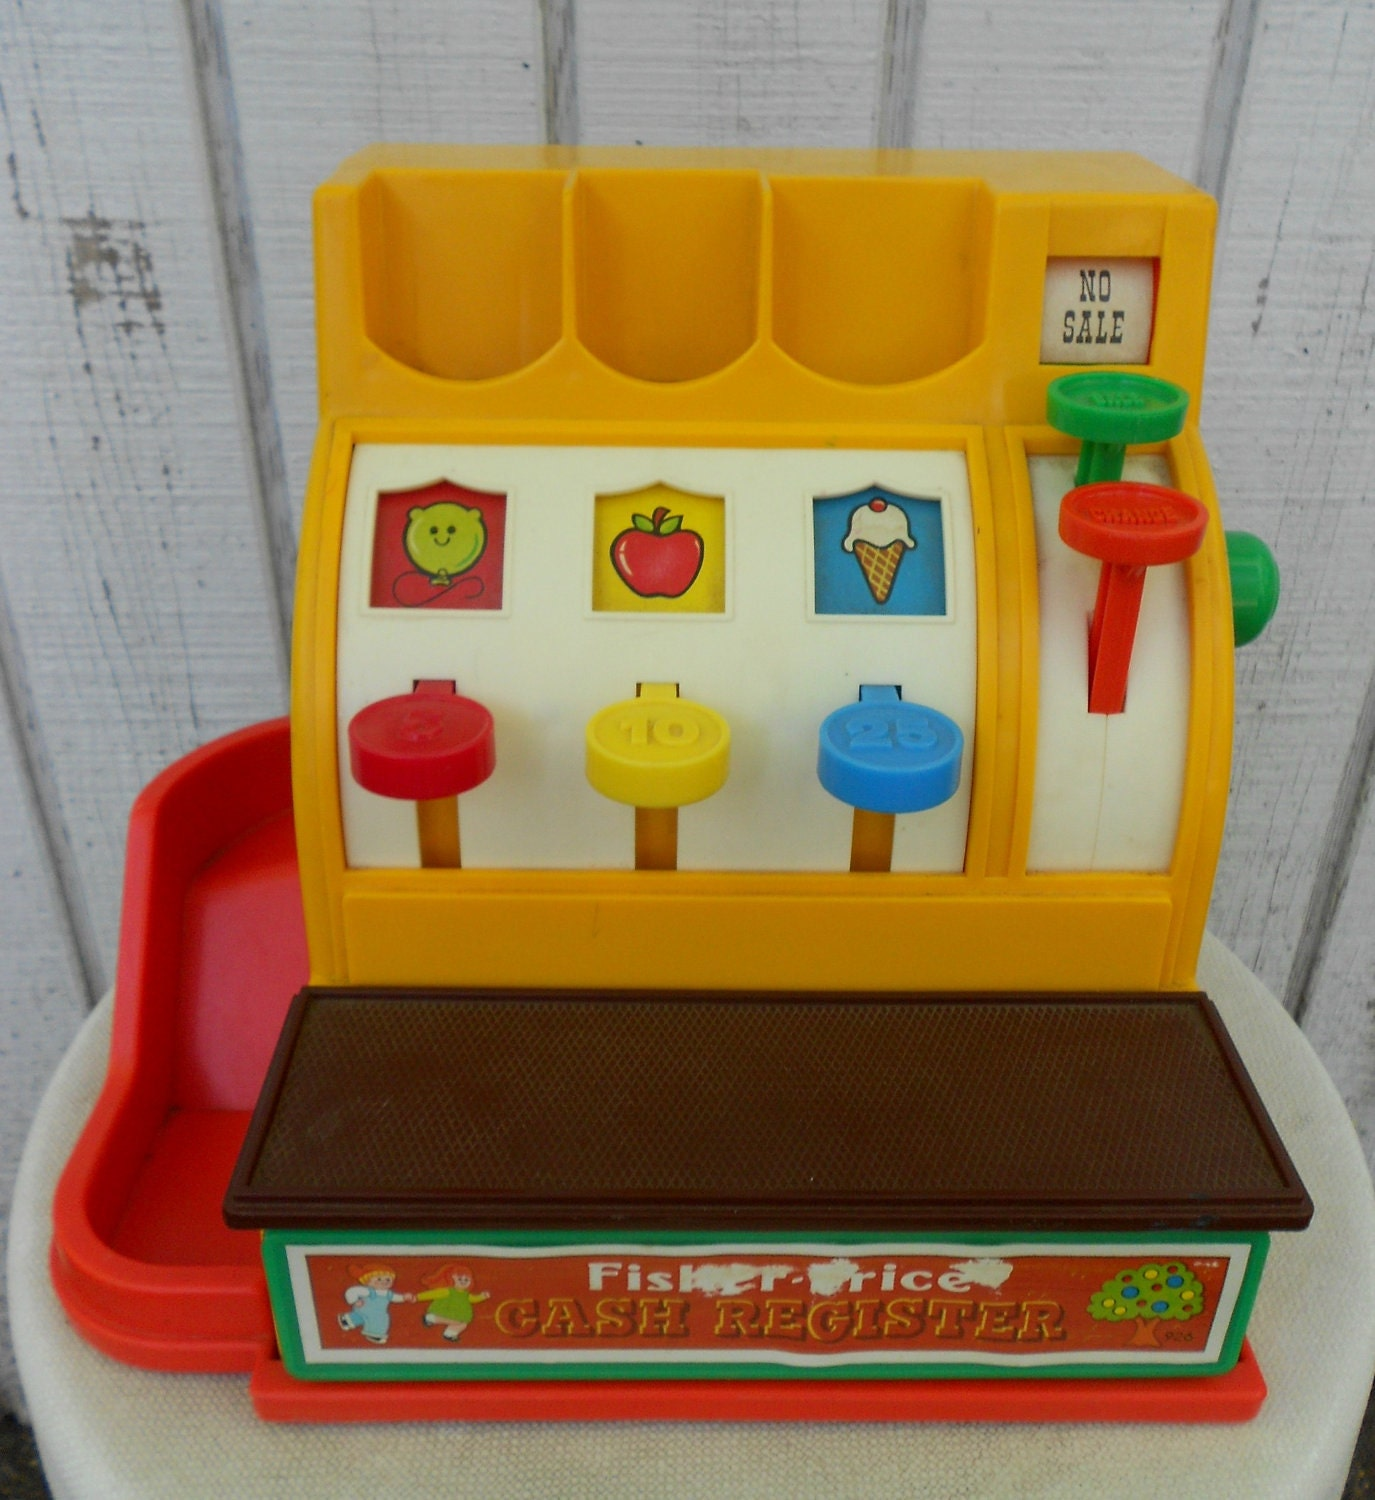 Old Toys From The 70s : Vintage fisher price cash register s toy child cashier